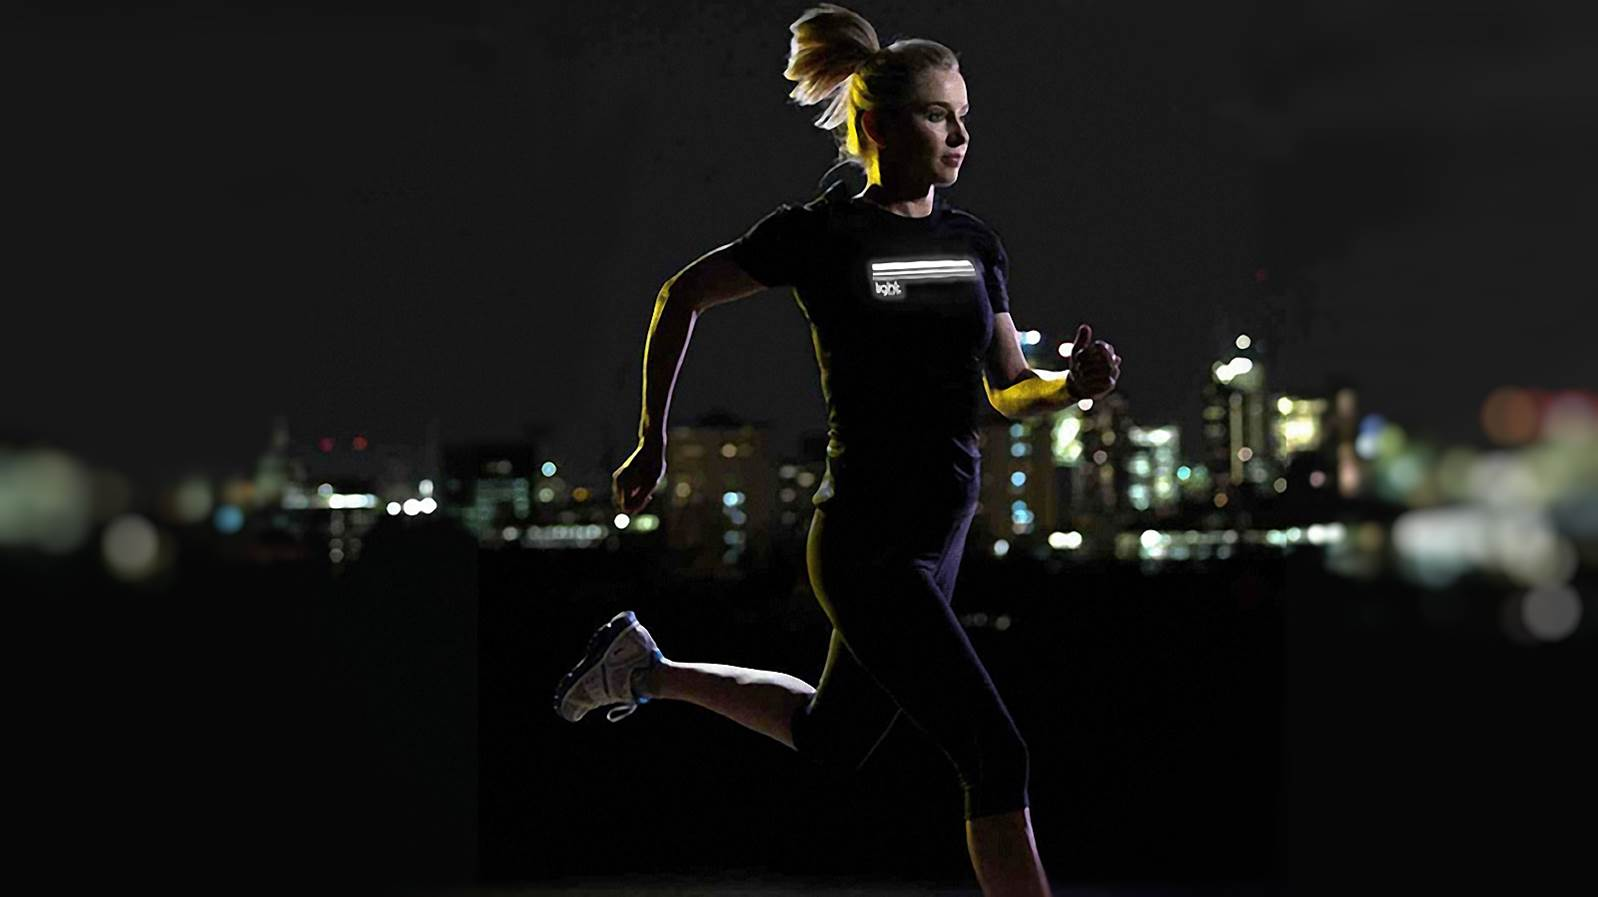 Running, cycling, wearable advertising apparel